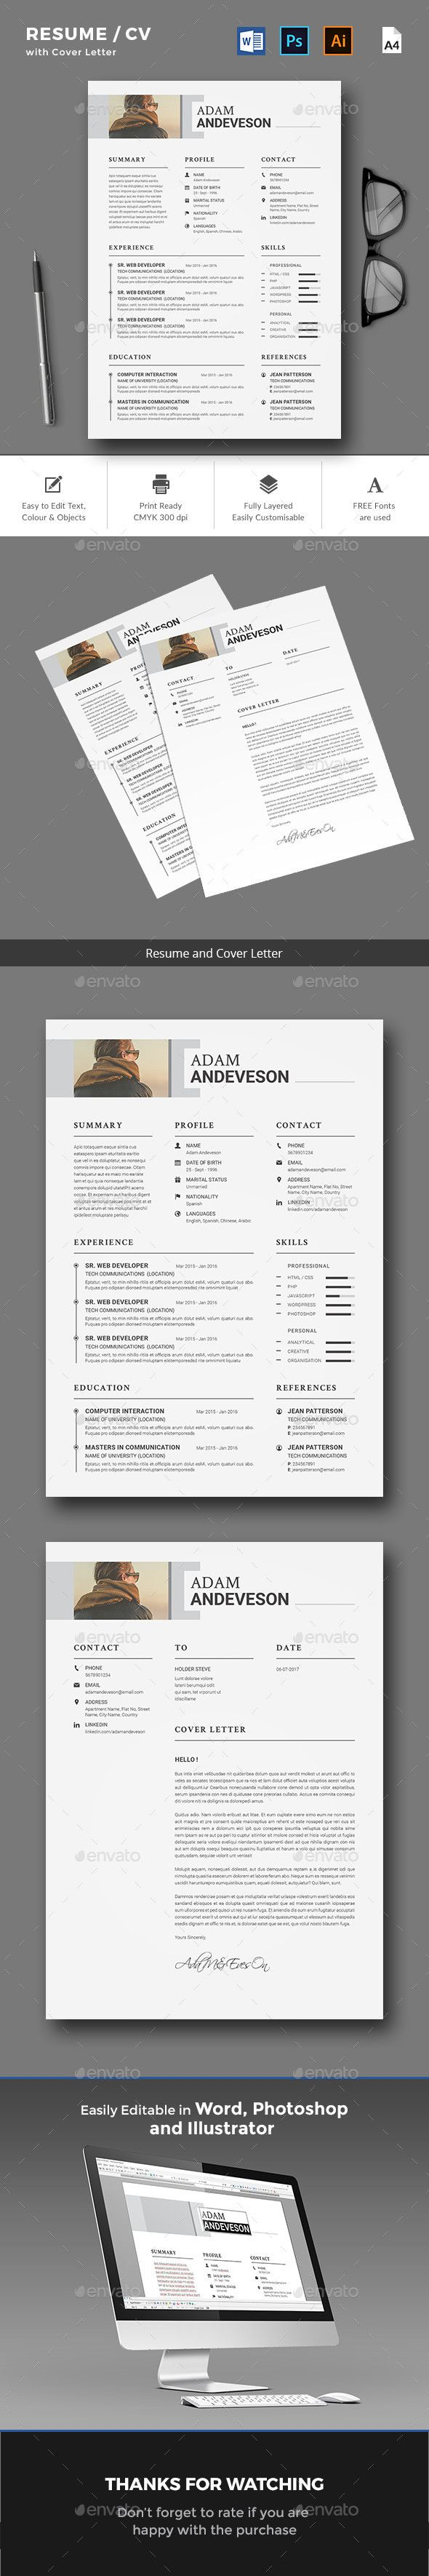 Resume CV by yellowkyte Resume